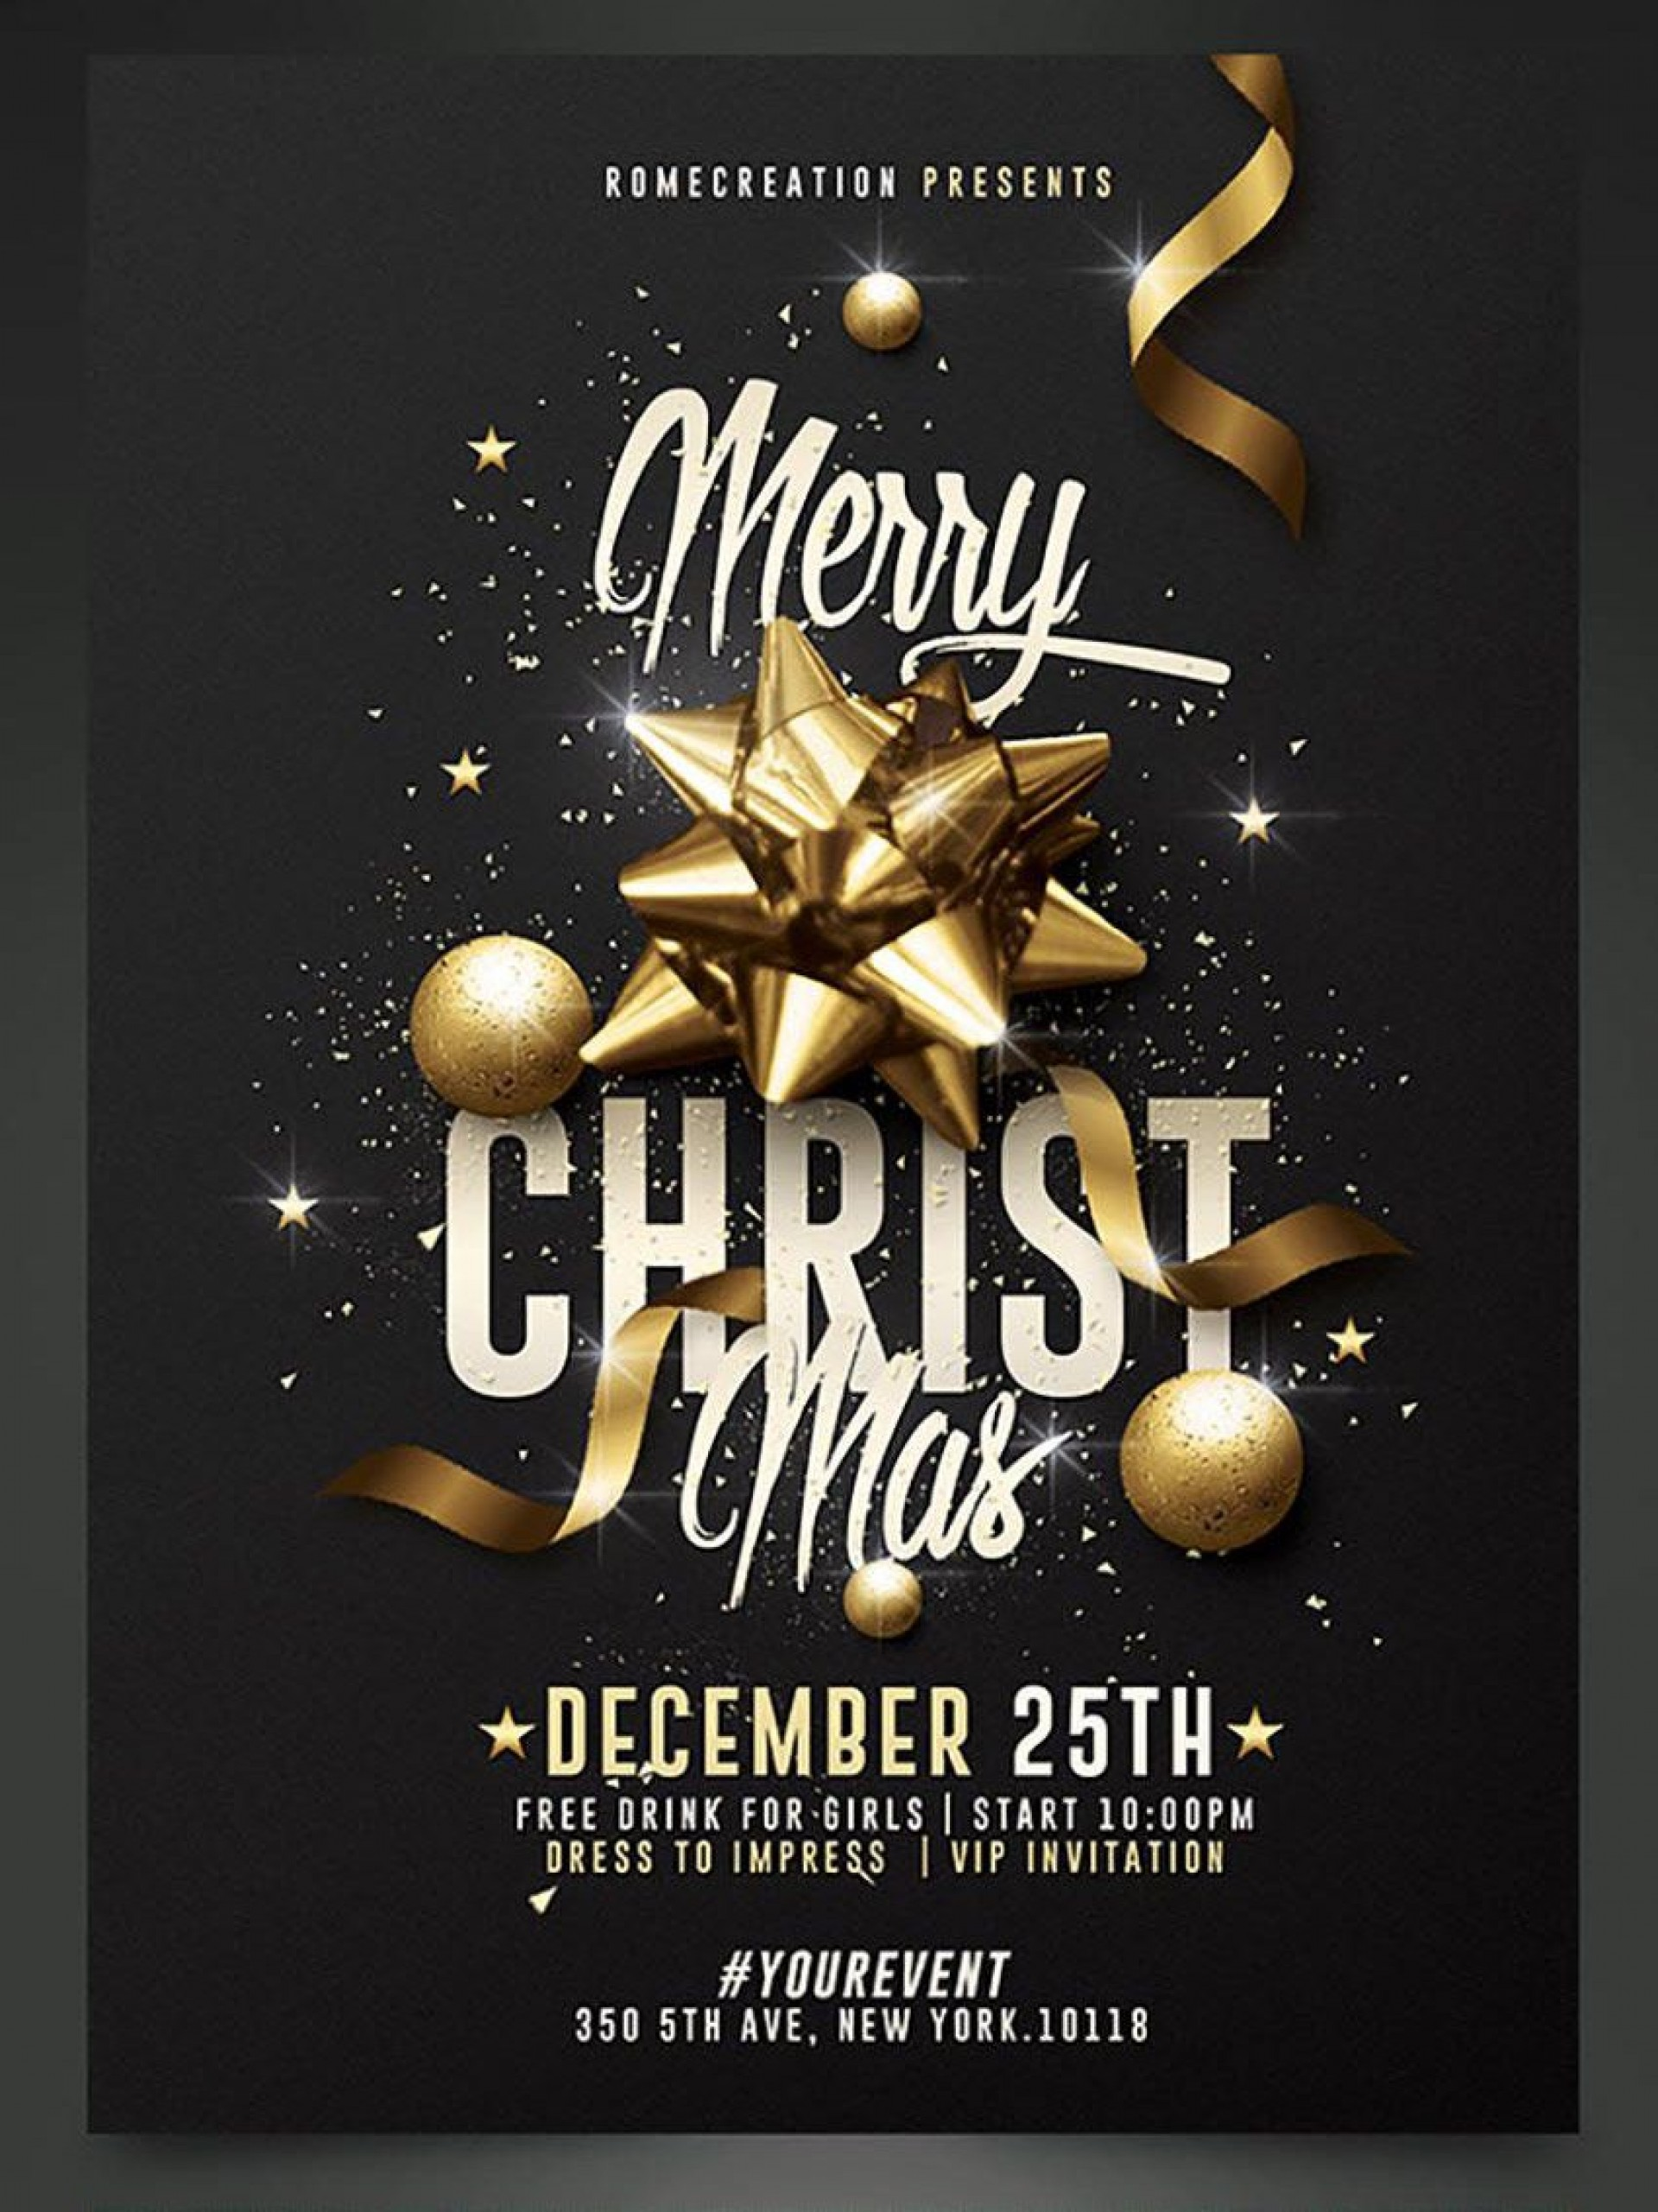 008 Unique Holiday Party Flyer Template Free Picture  Office1920